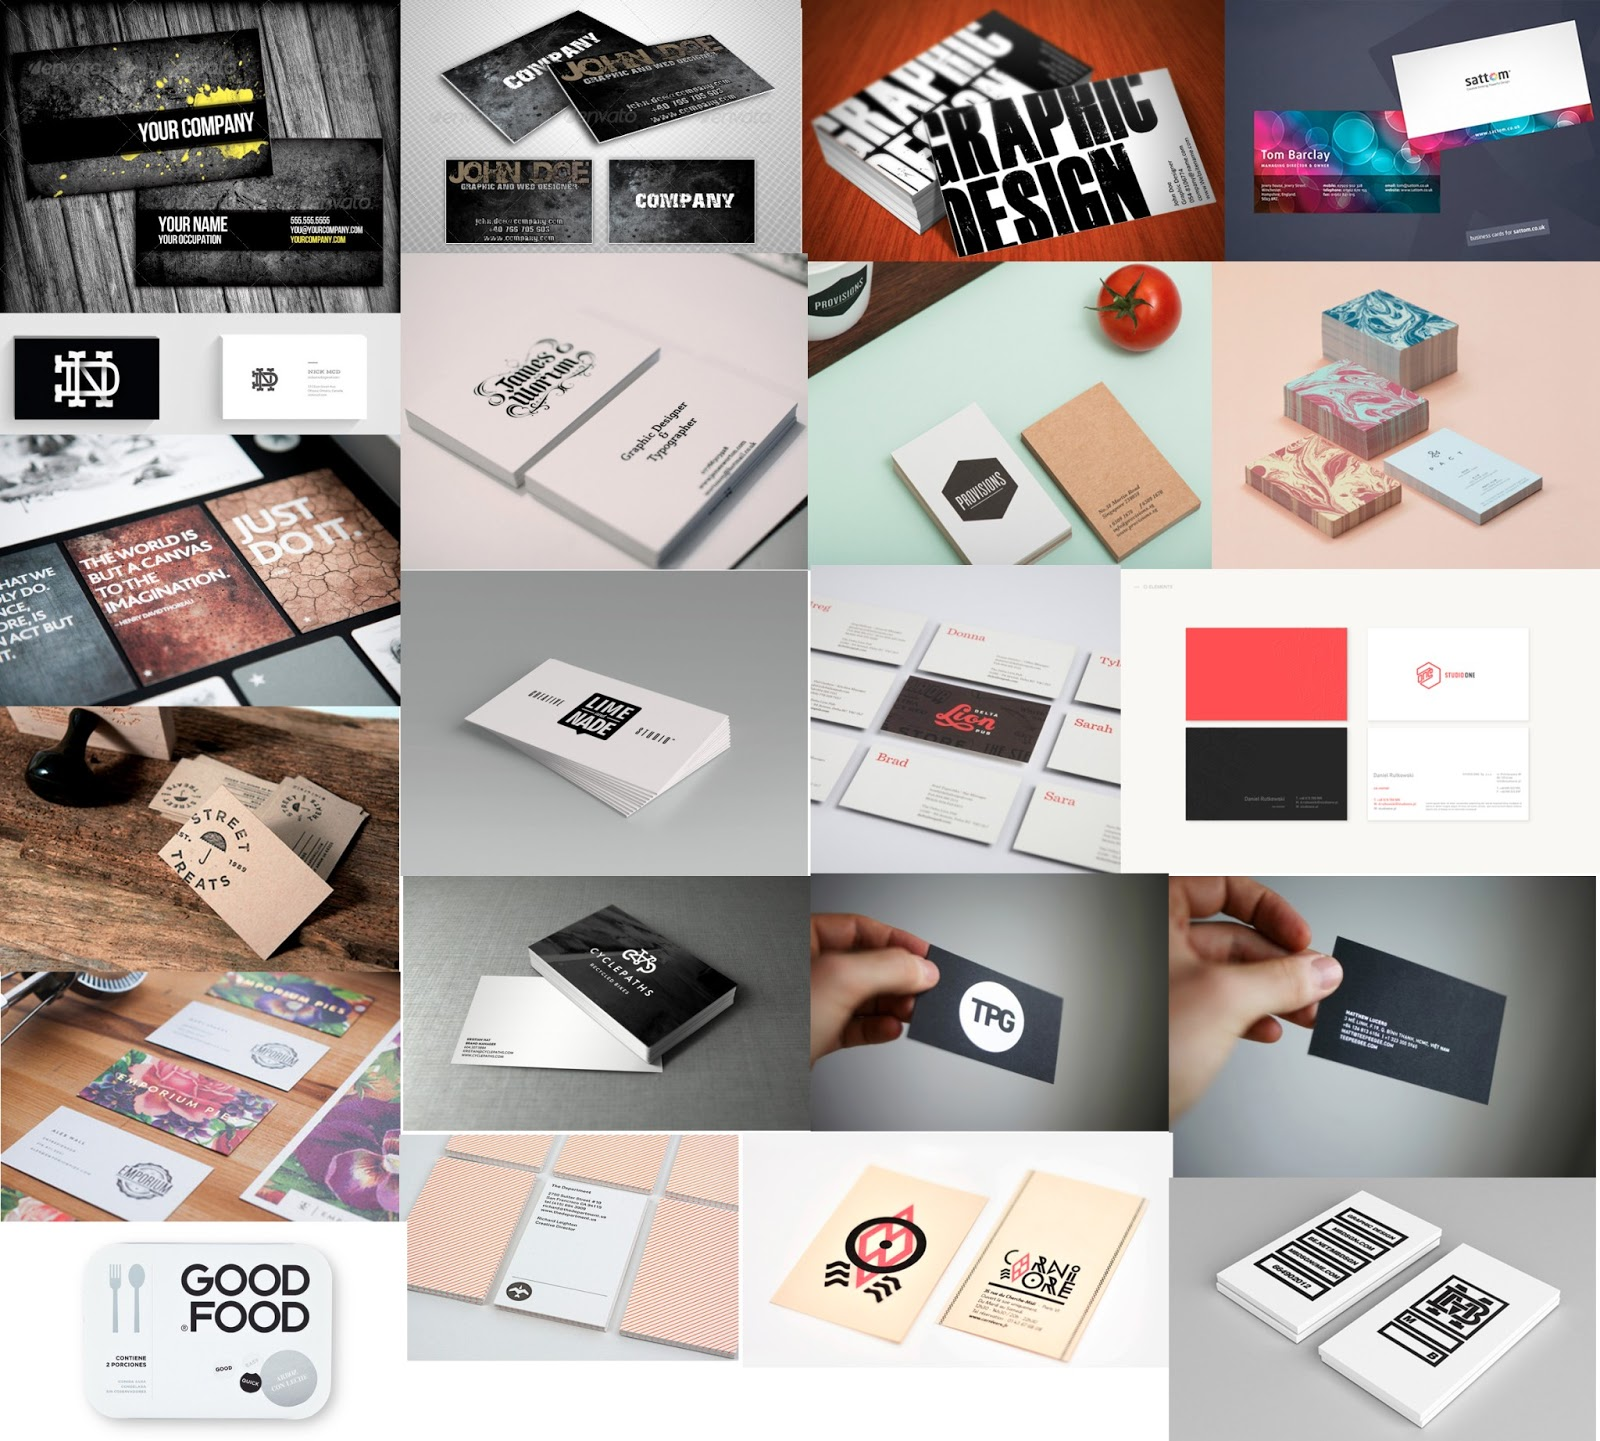 Liz Owen - Graphic Design and Illustration: Business Card Research